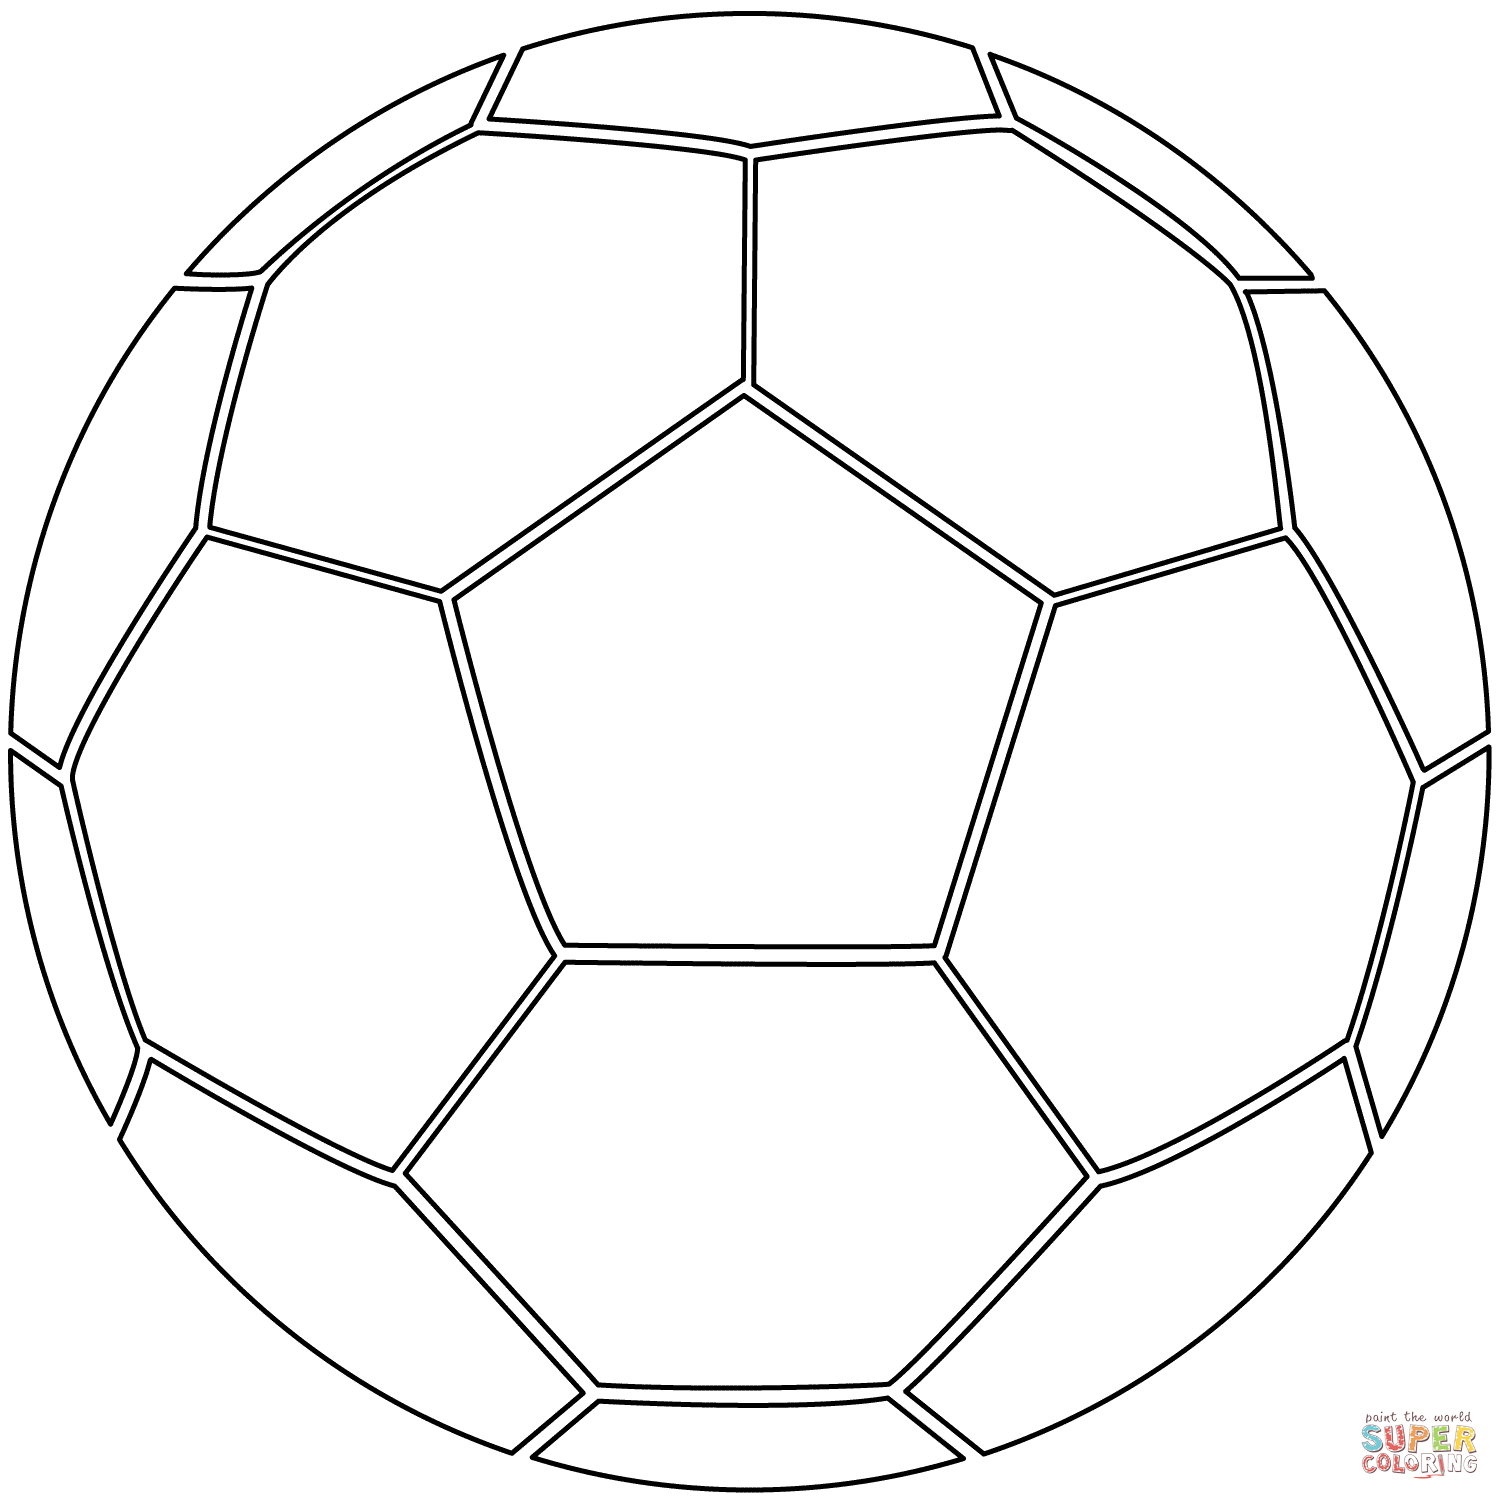 soccer colouring pages free printable free printable football coloring pages for kids best free printable soccer colouring pages